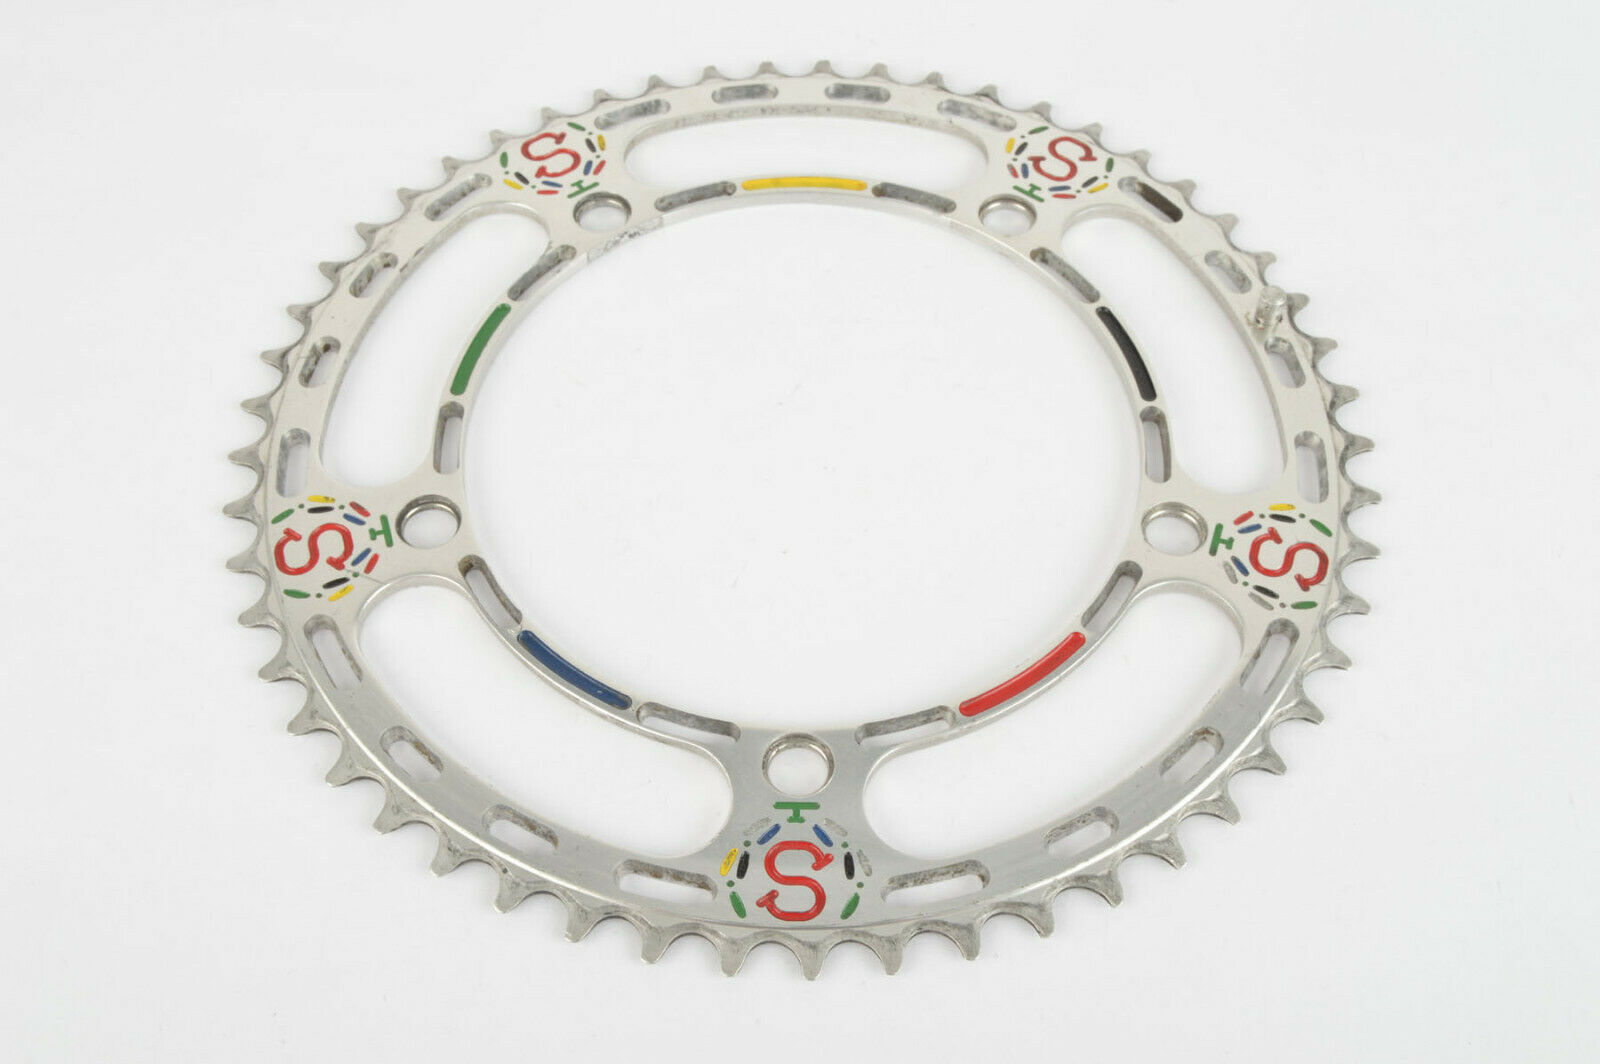 Campagnolo Record  753 s Panto chainring with 53 teeth and 144 BCD